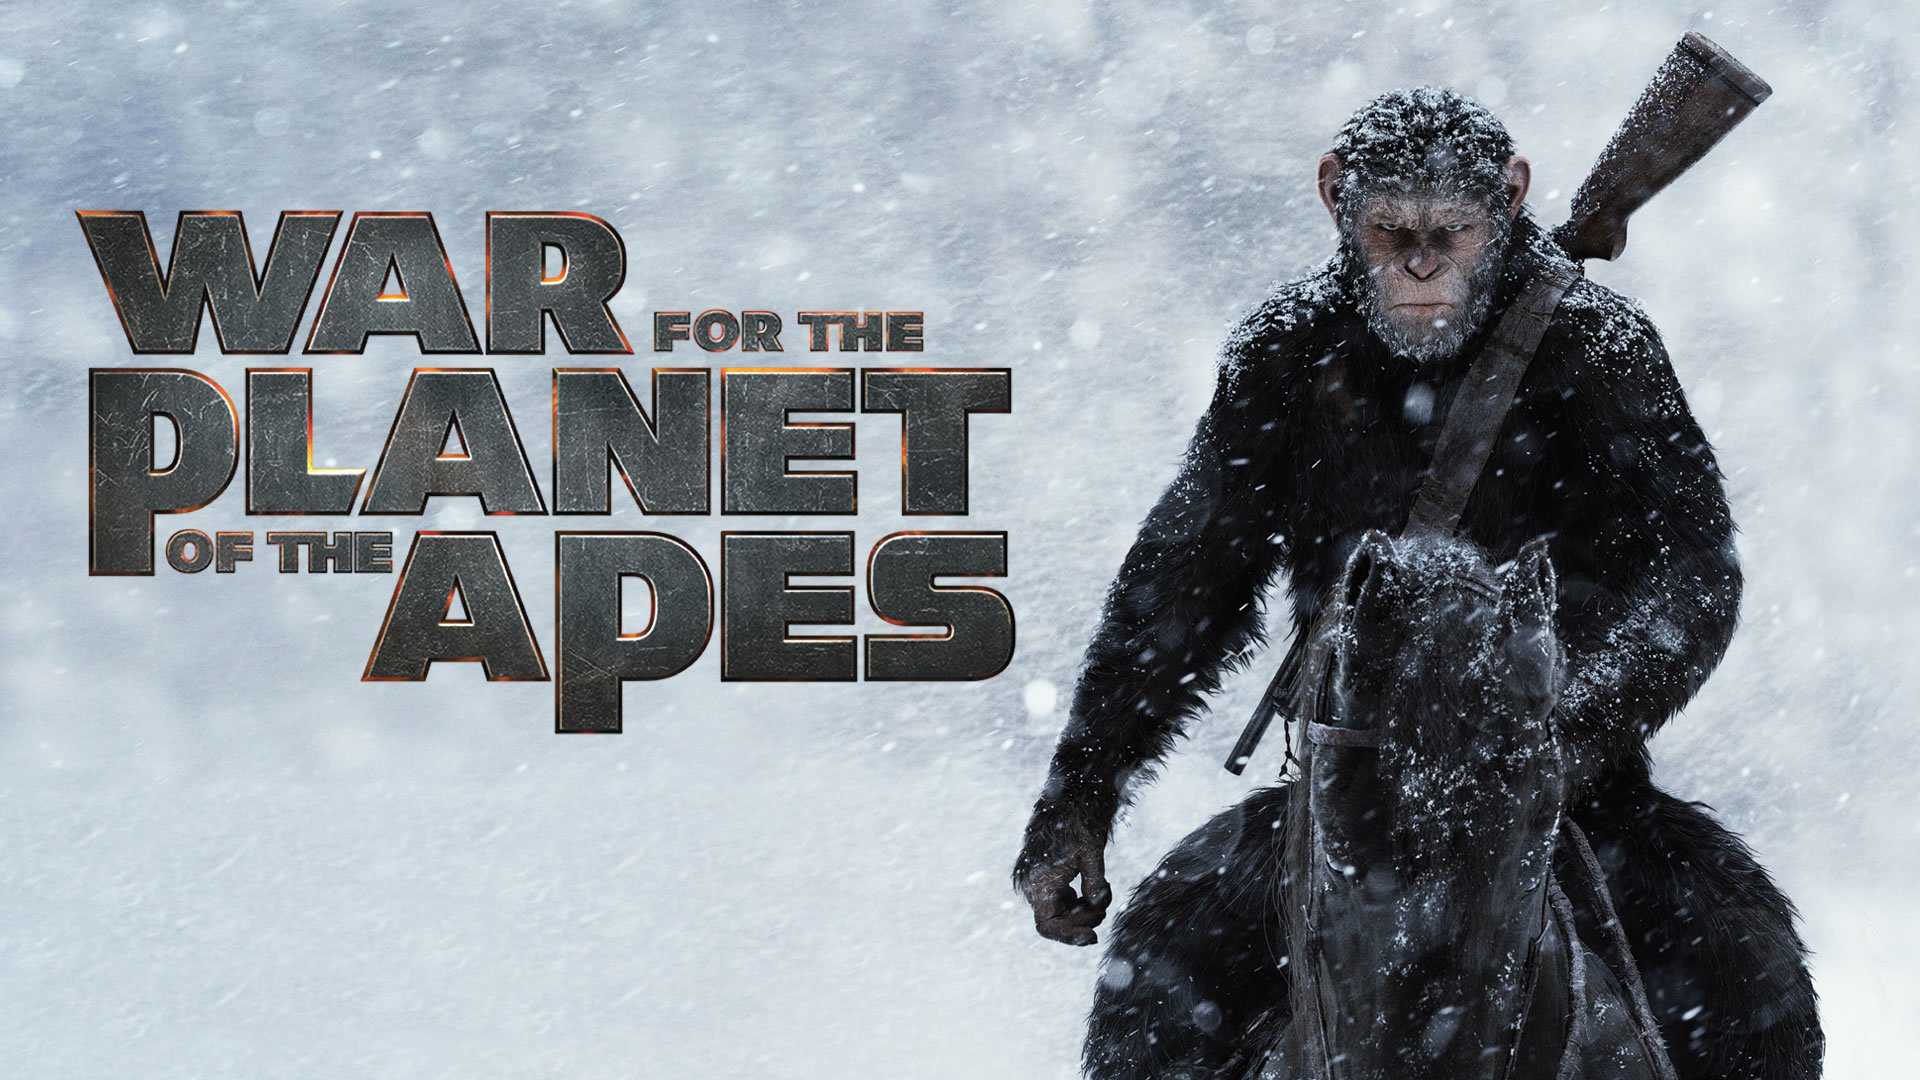 War for the Planet of the Apes | BURG KINO Wien | Vienna ...